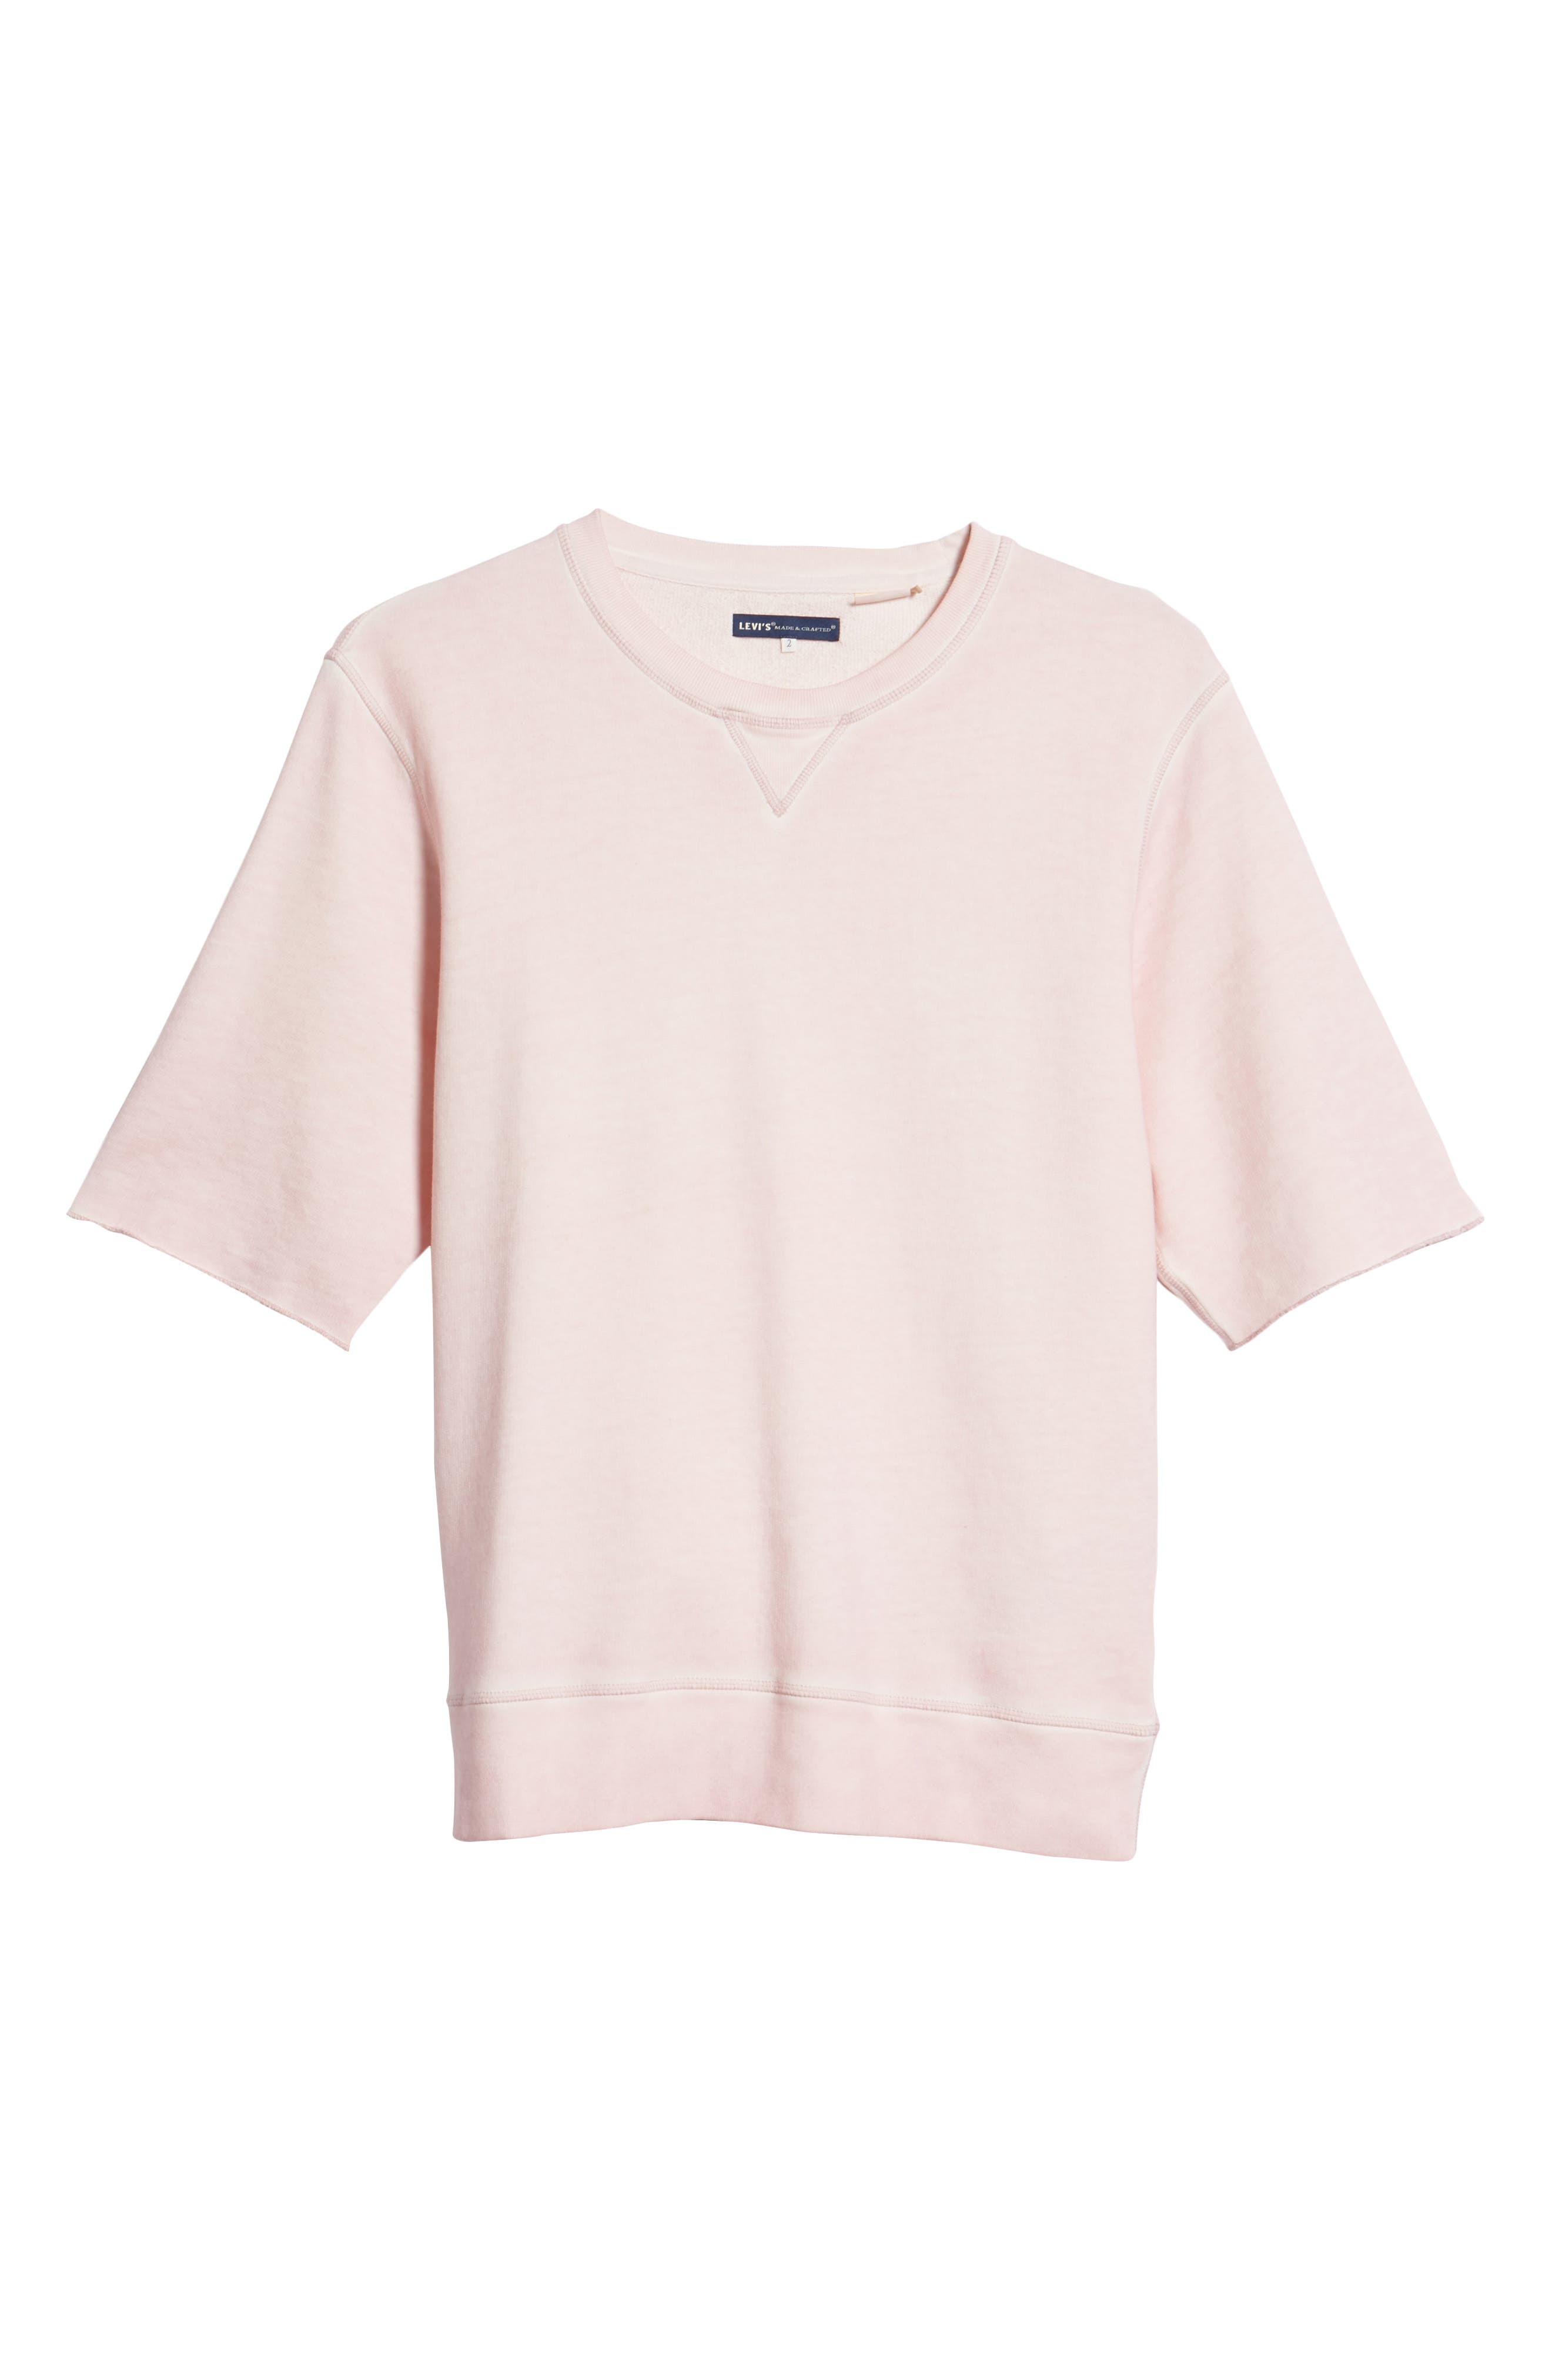 Levis'<sup>®</sup> Made & Crafted<sup>™</sup> Standard Fit T-Shirt,                             Alternate thumbnail 6, color,                             Keepsake Lilac